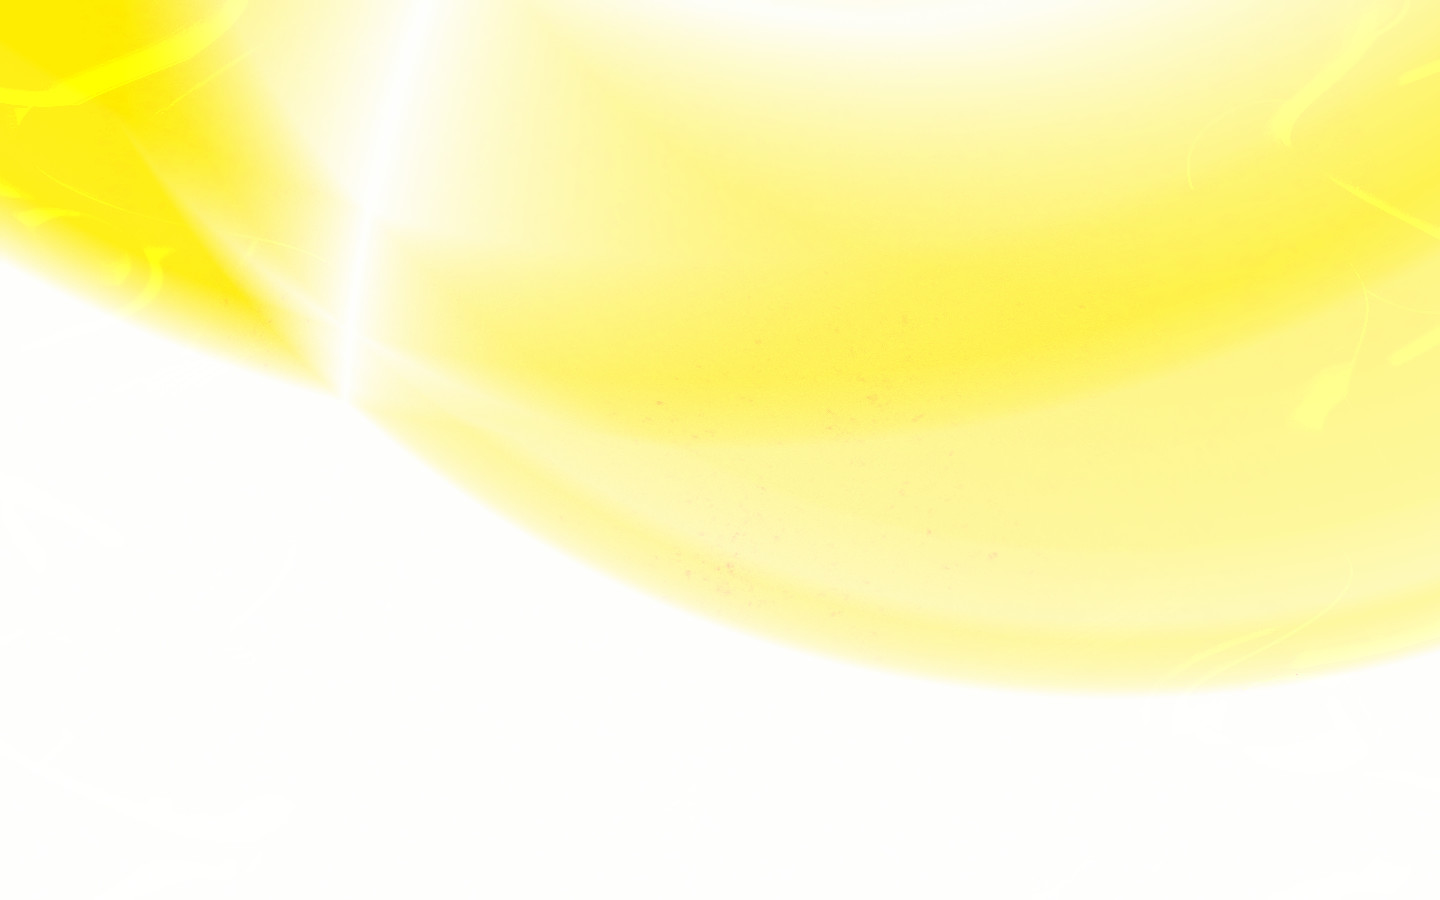 Yellow Abstract Backgrounds Yellow Abstract